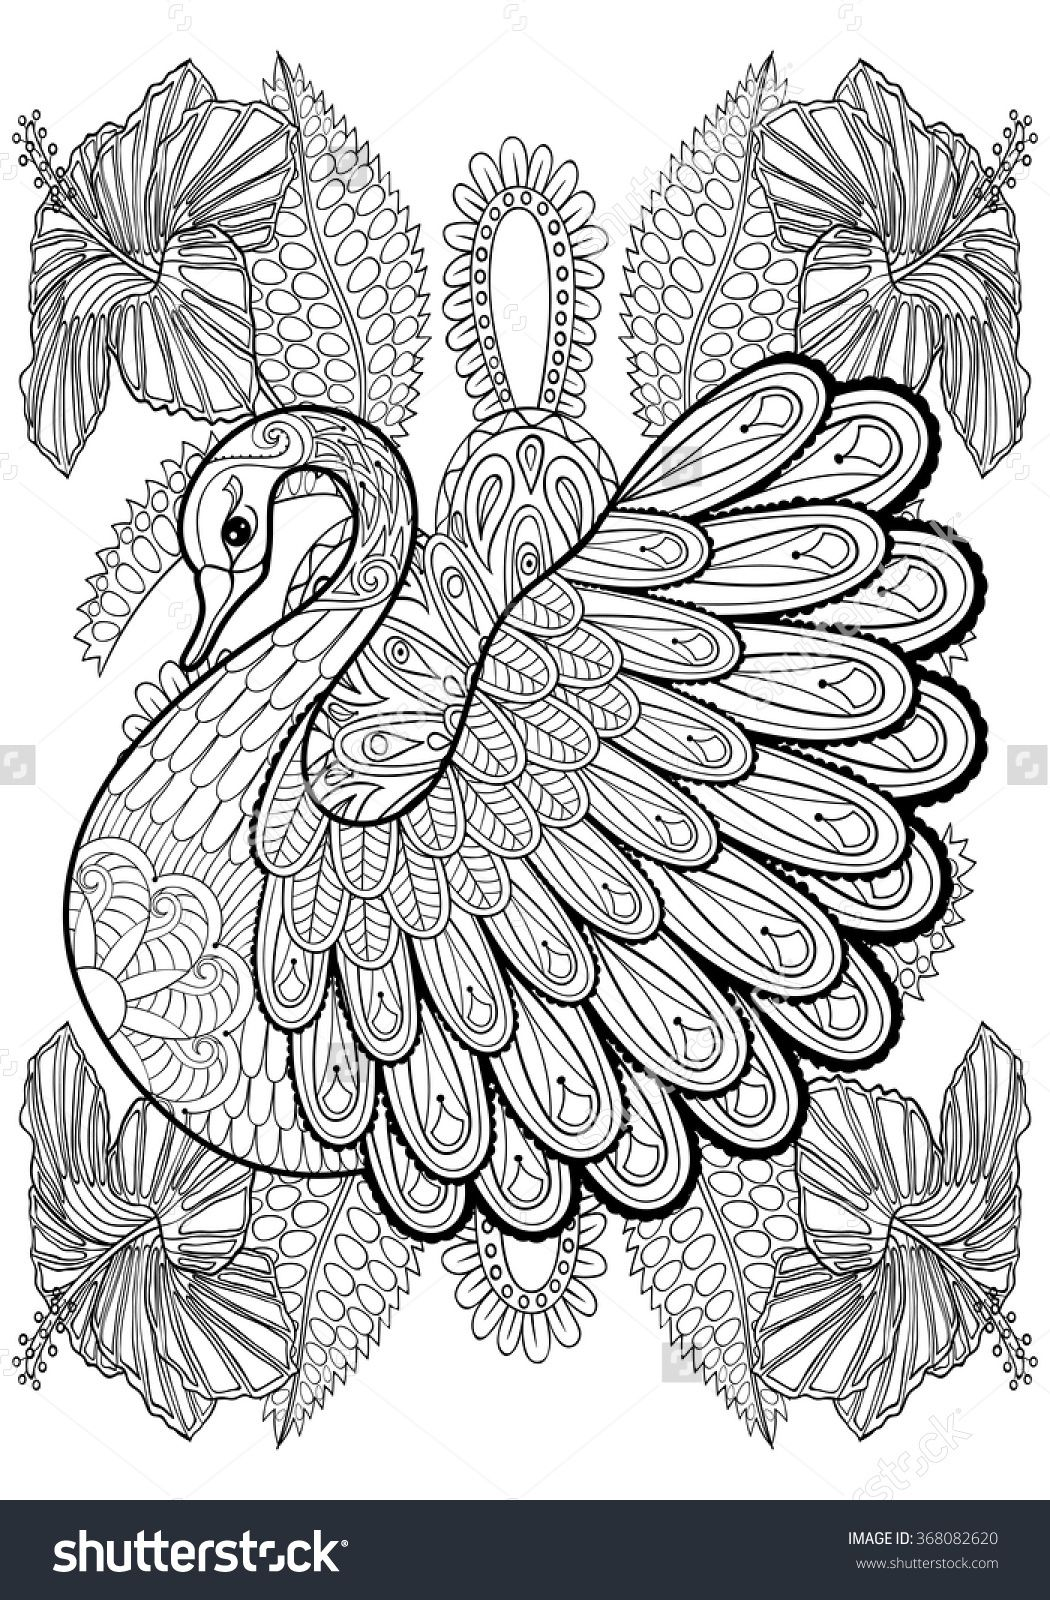 Flower coloring pages for adults - Coloring Pages For Adults Flowers Google Search